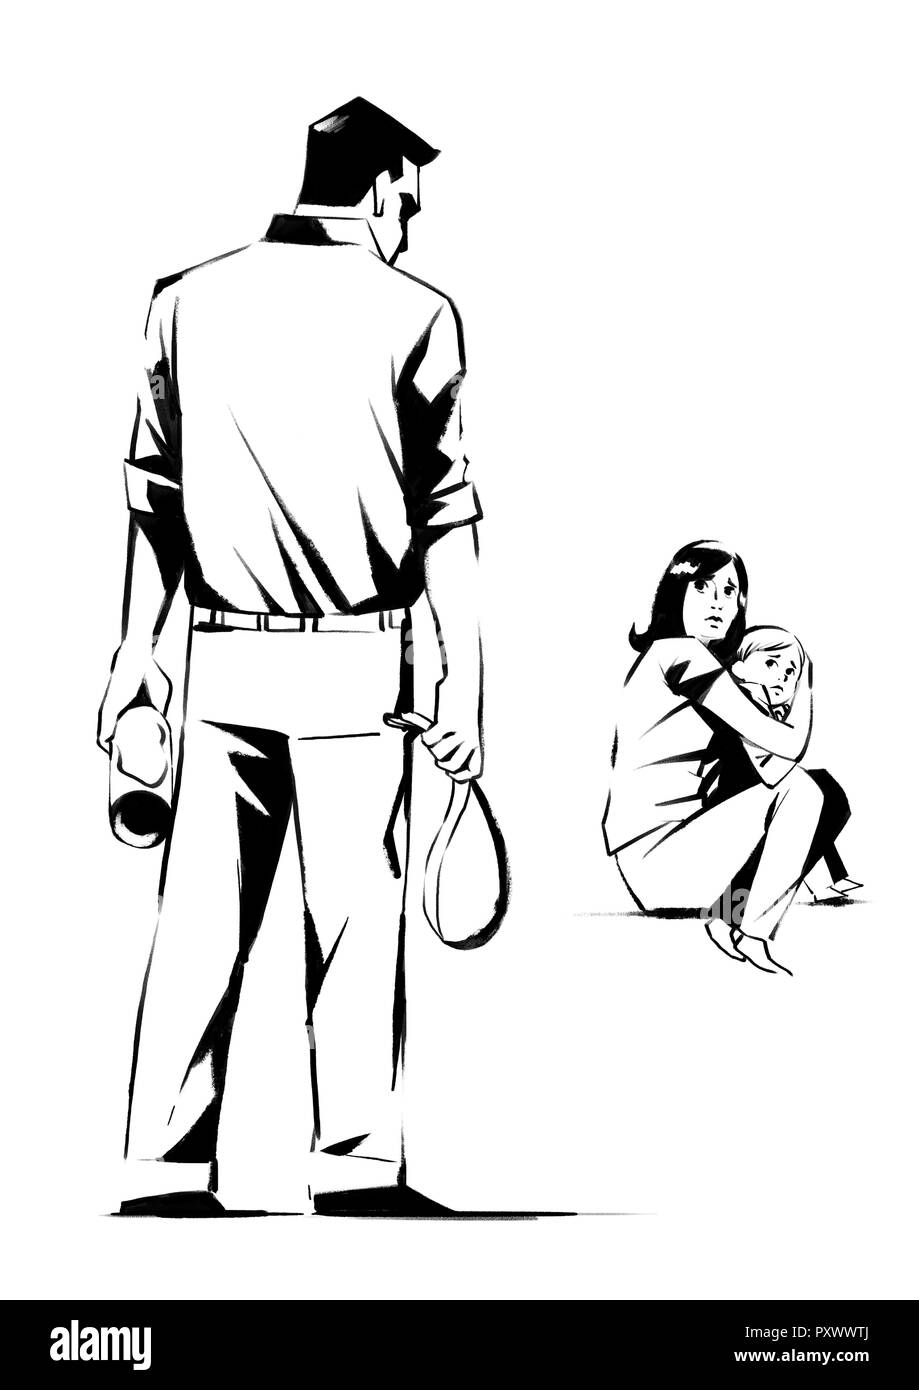 Vector - illustration of different domestic violence situations in this  society. Hand drawn black on white background. 001